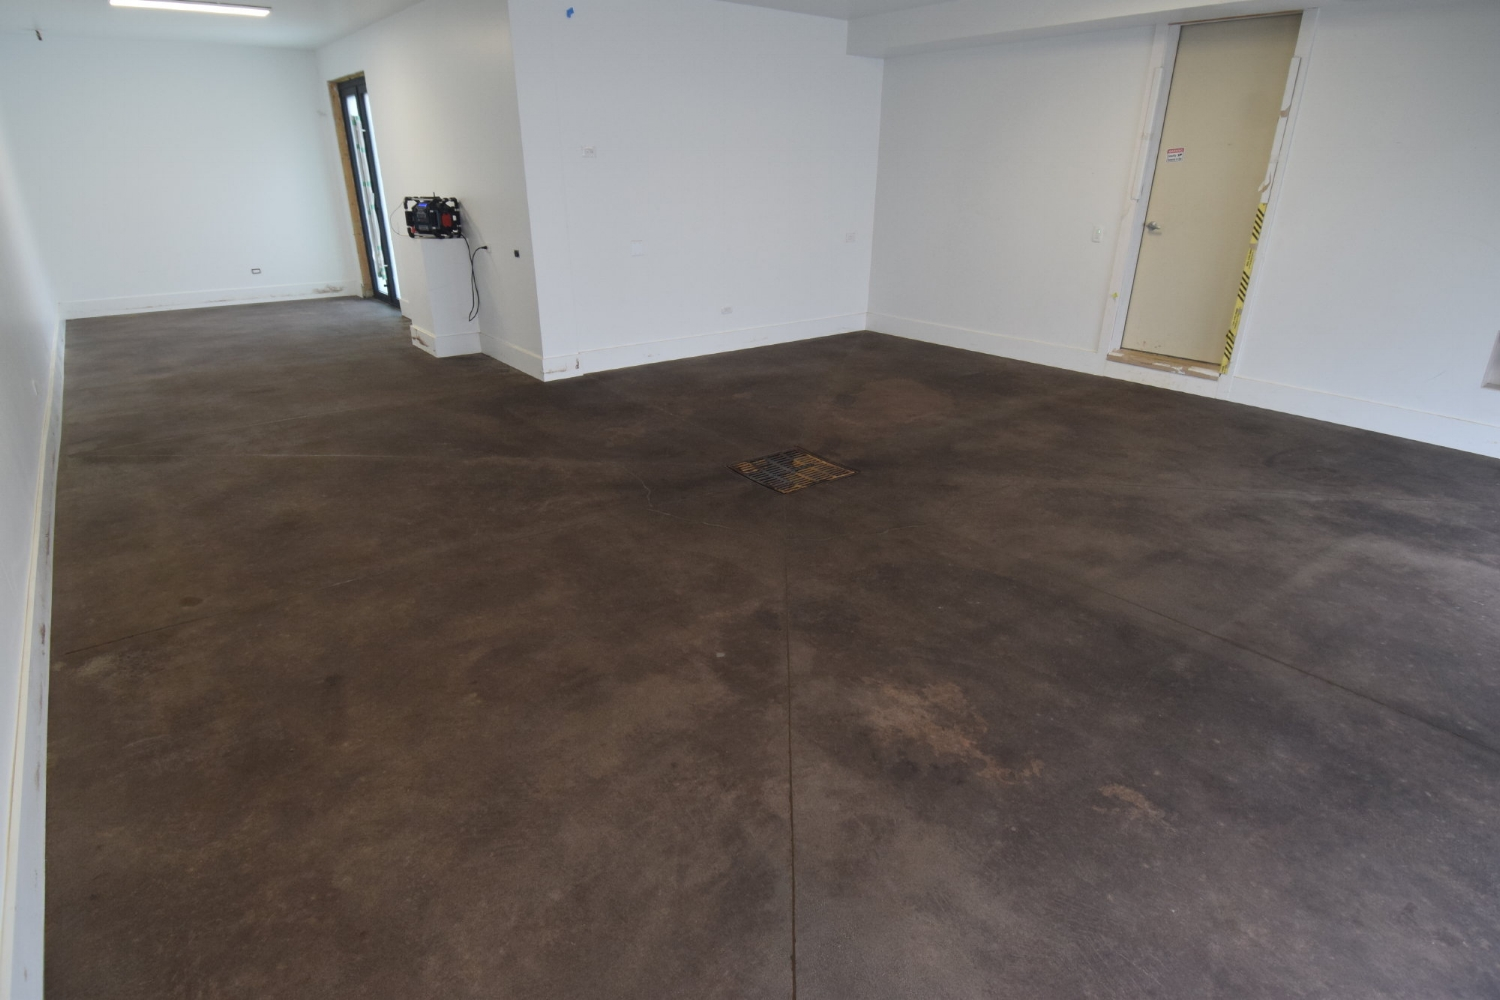 Garage Concrete Floor After Applying Black Acid Stain,Allowing 12 Hours For Reaction, And Rinsing